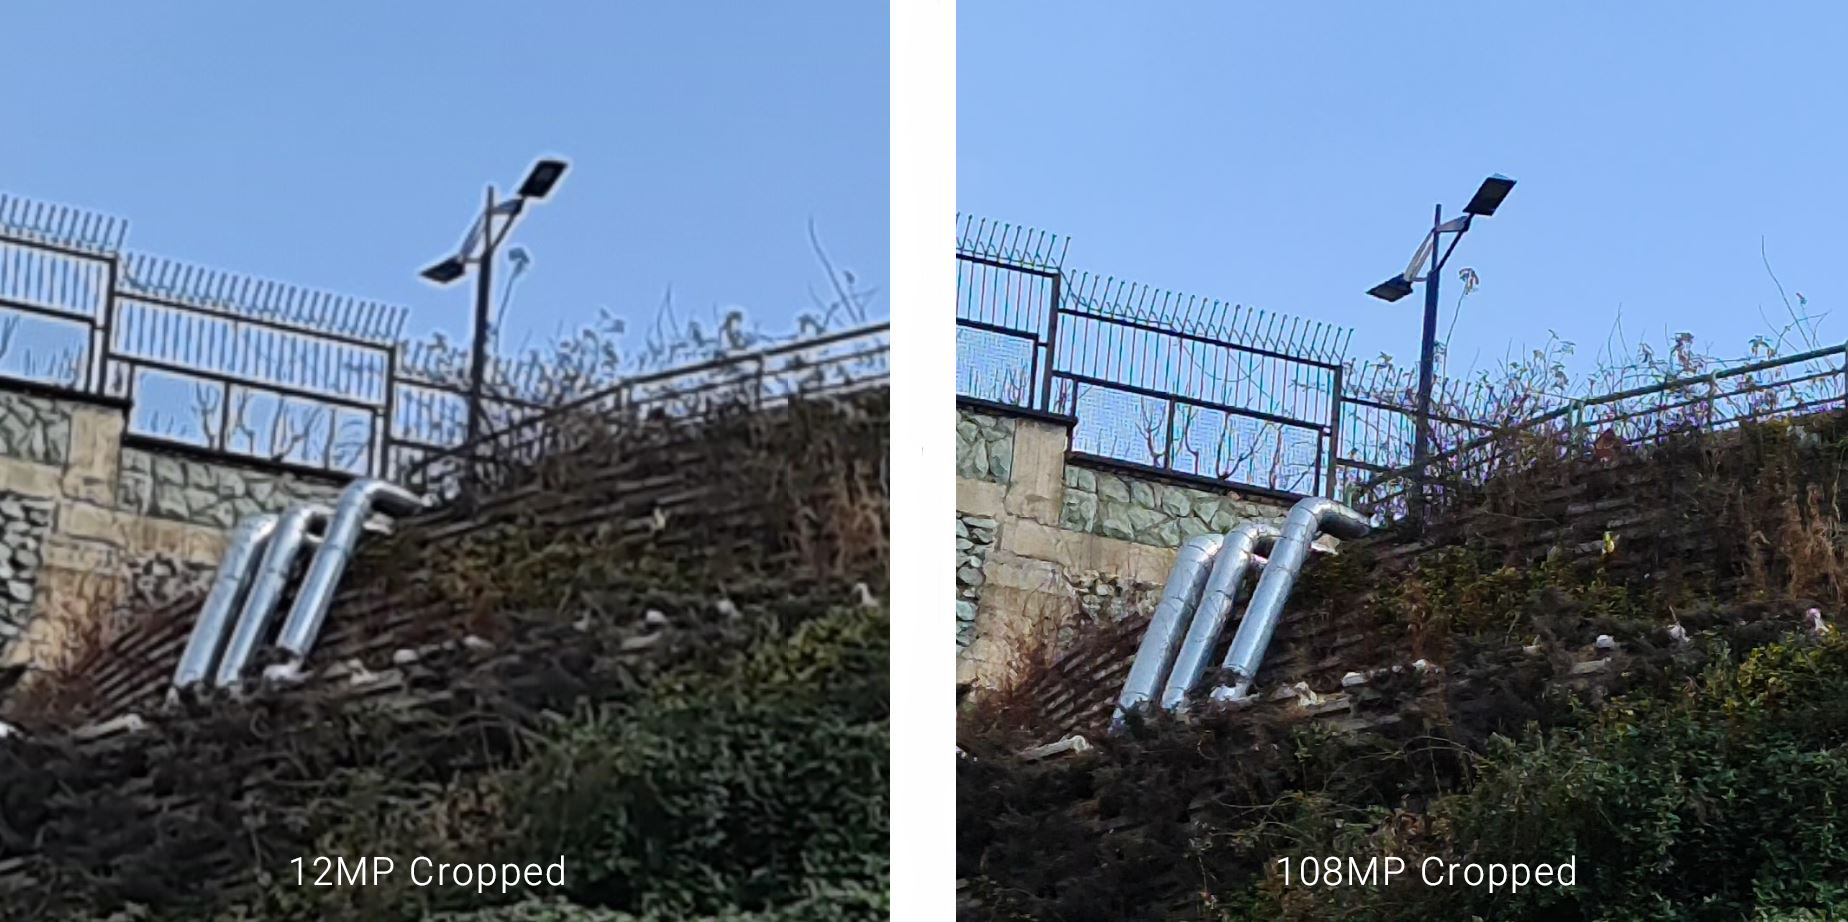 Galaxy S20 Ultra 108MP vs 12MP